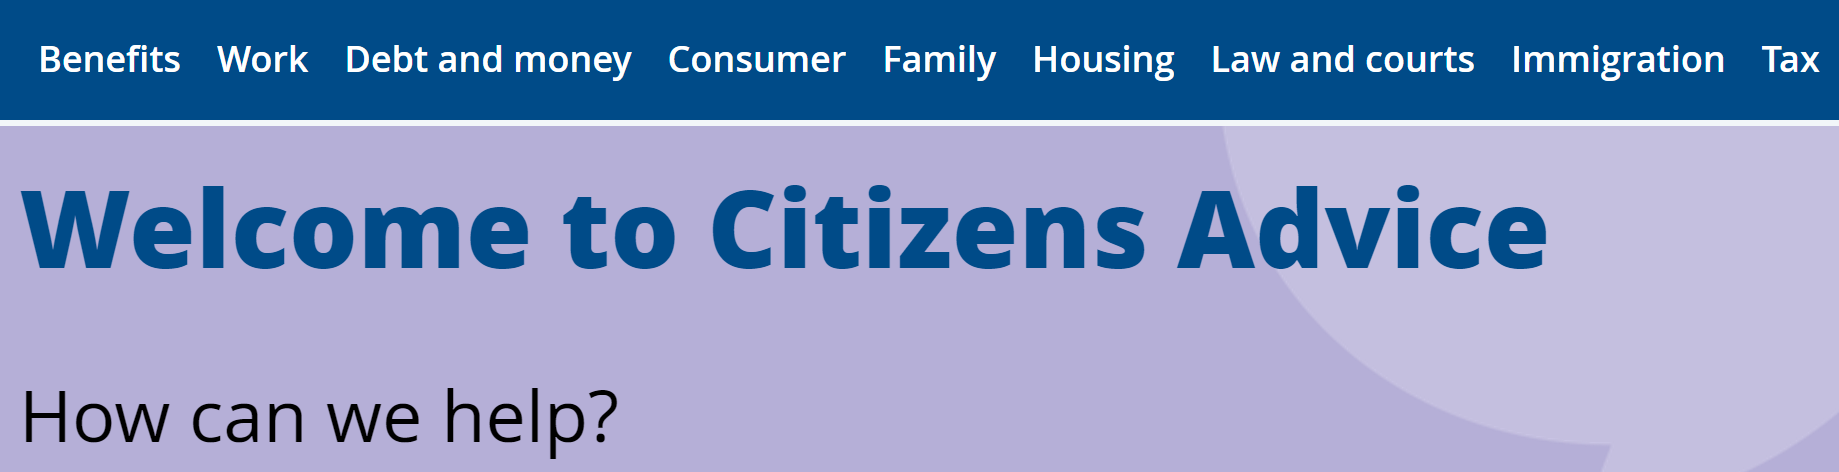 Image linking to Citizens Advice Public Site